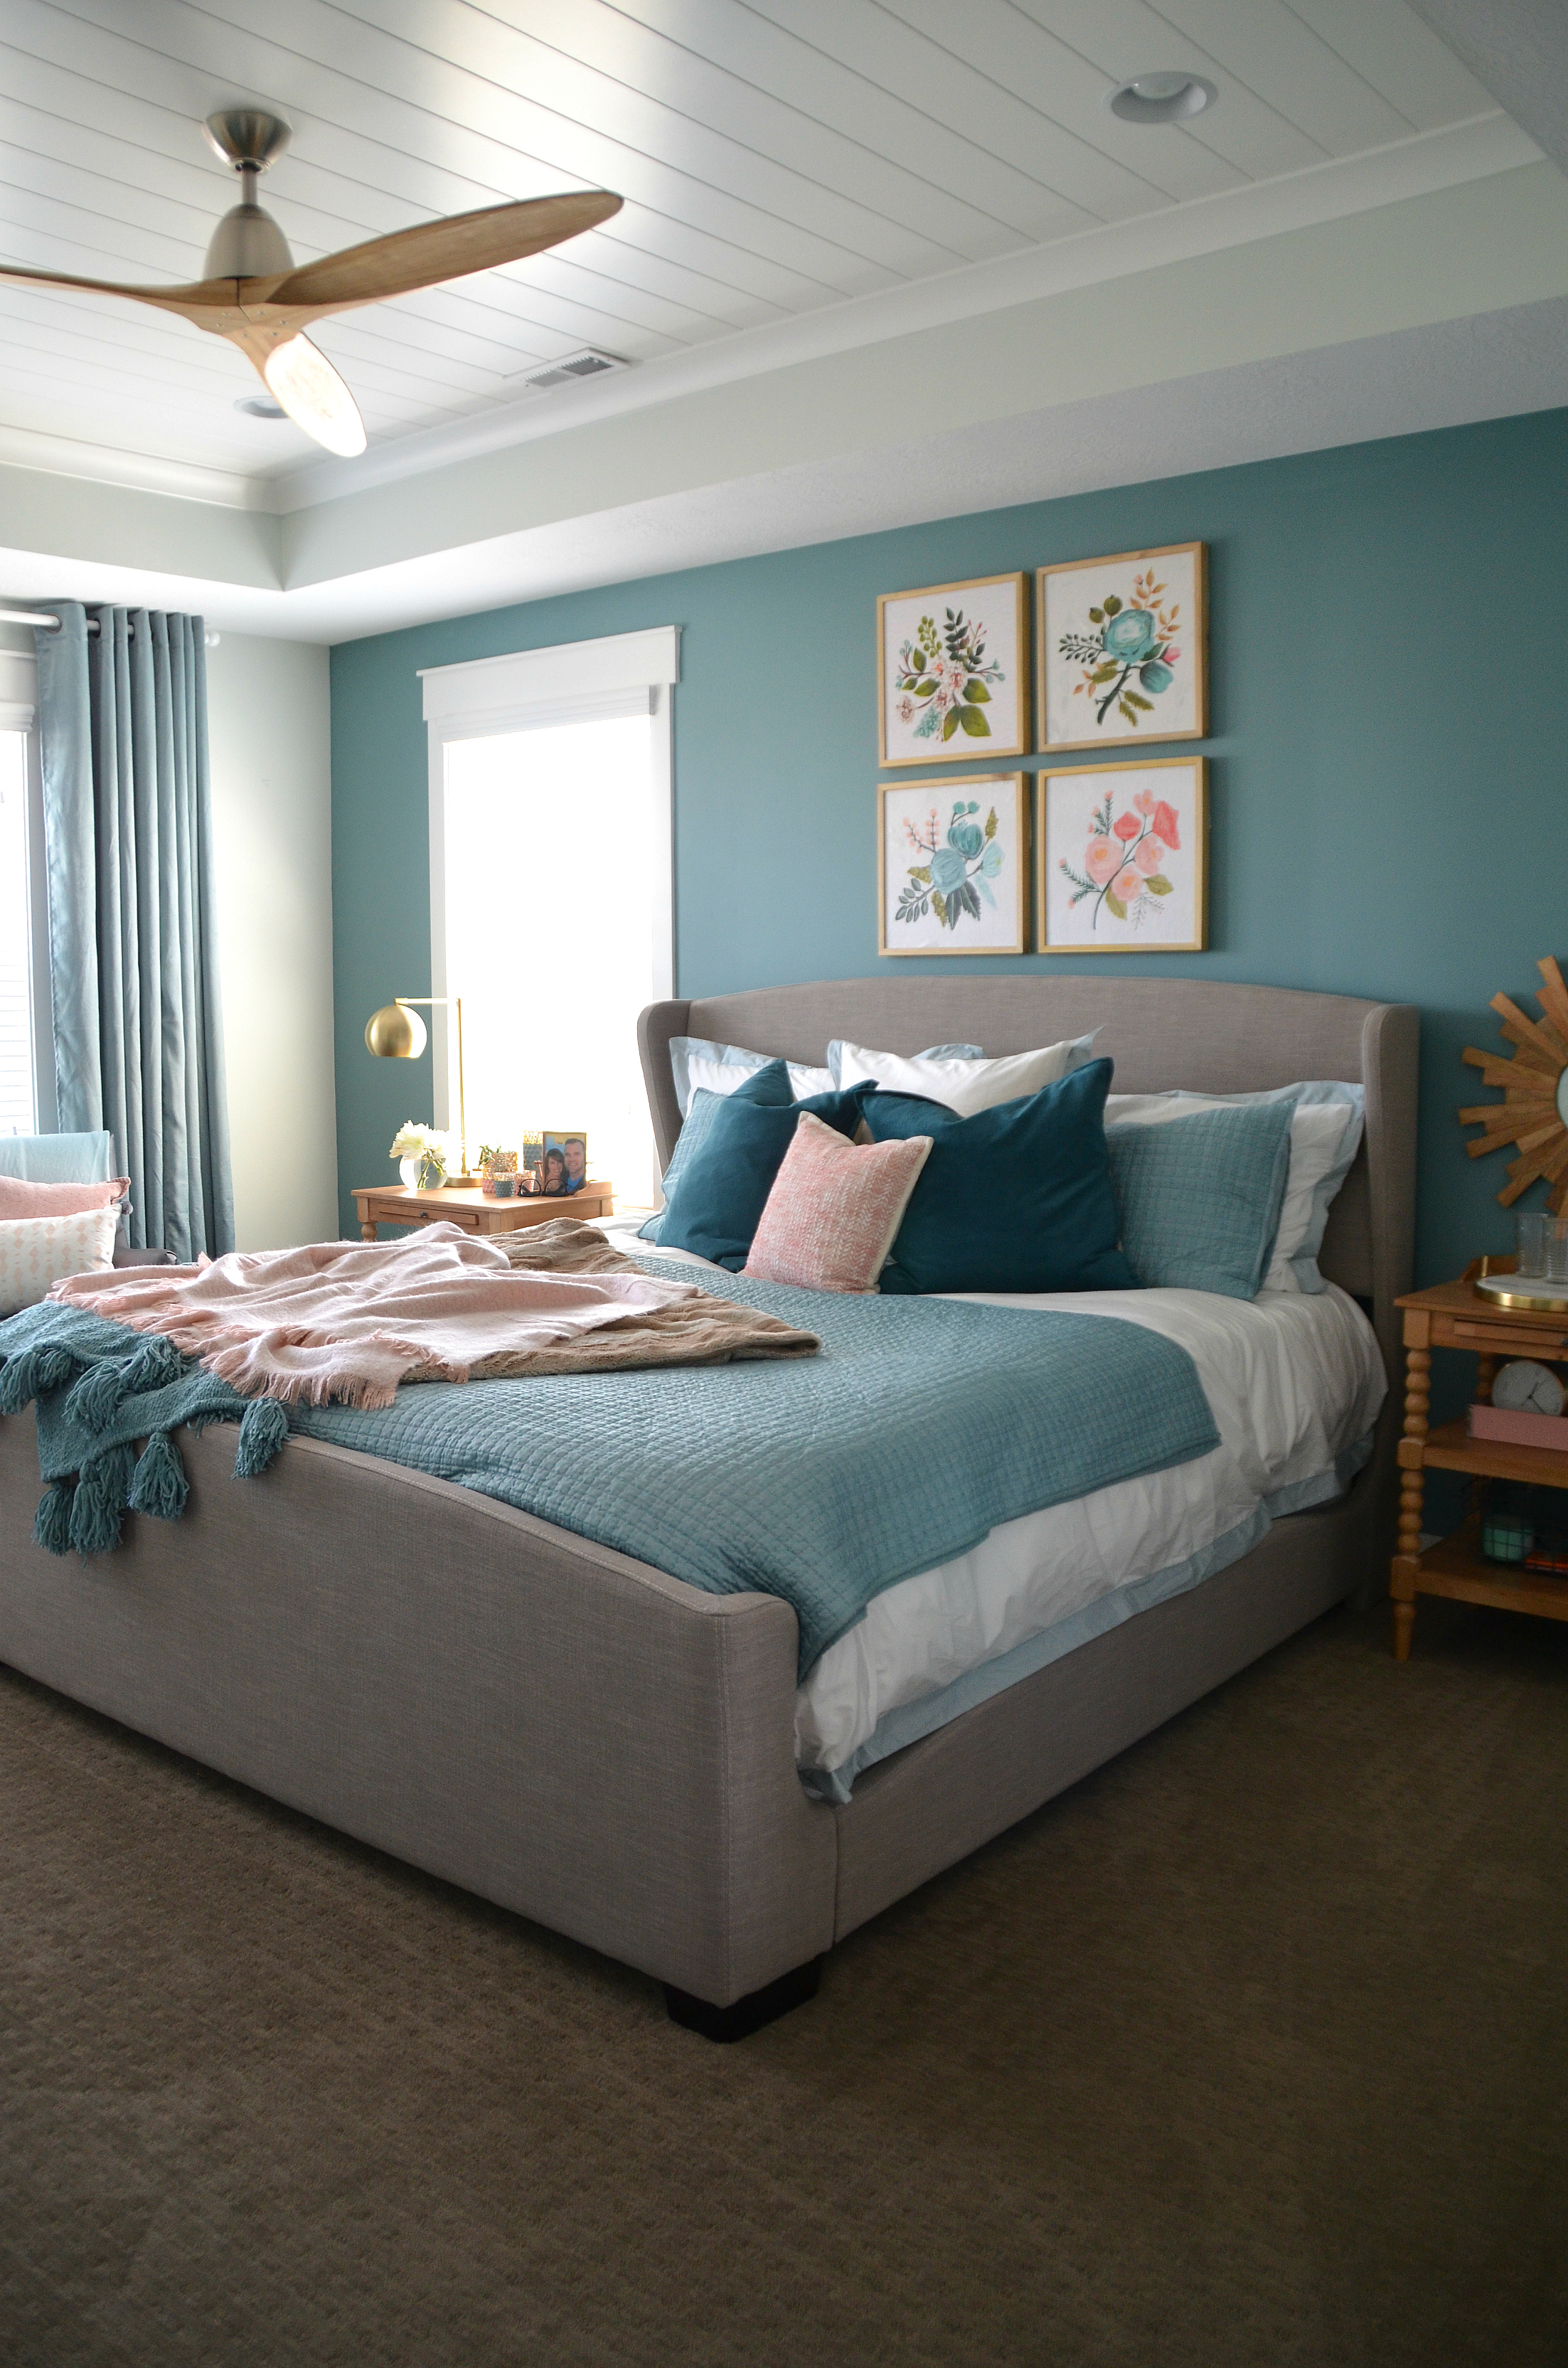 Luxury bedding at affordable prices crane and canopy